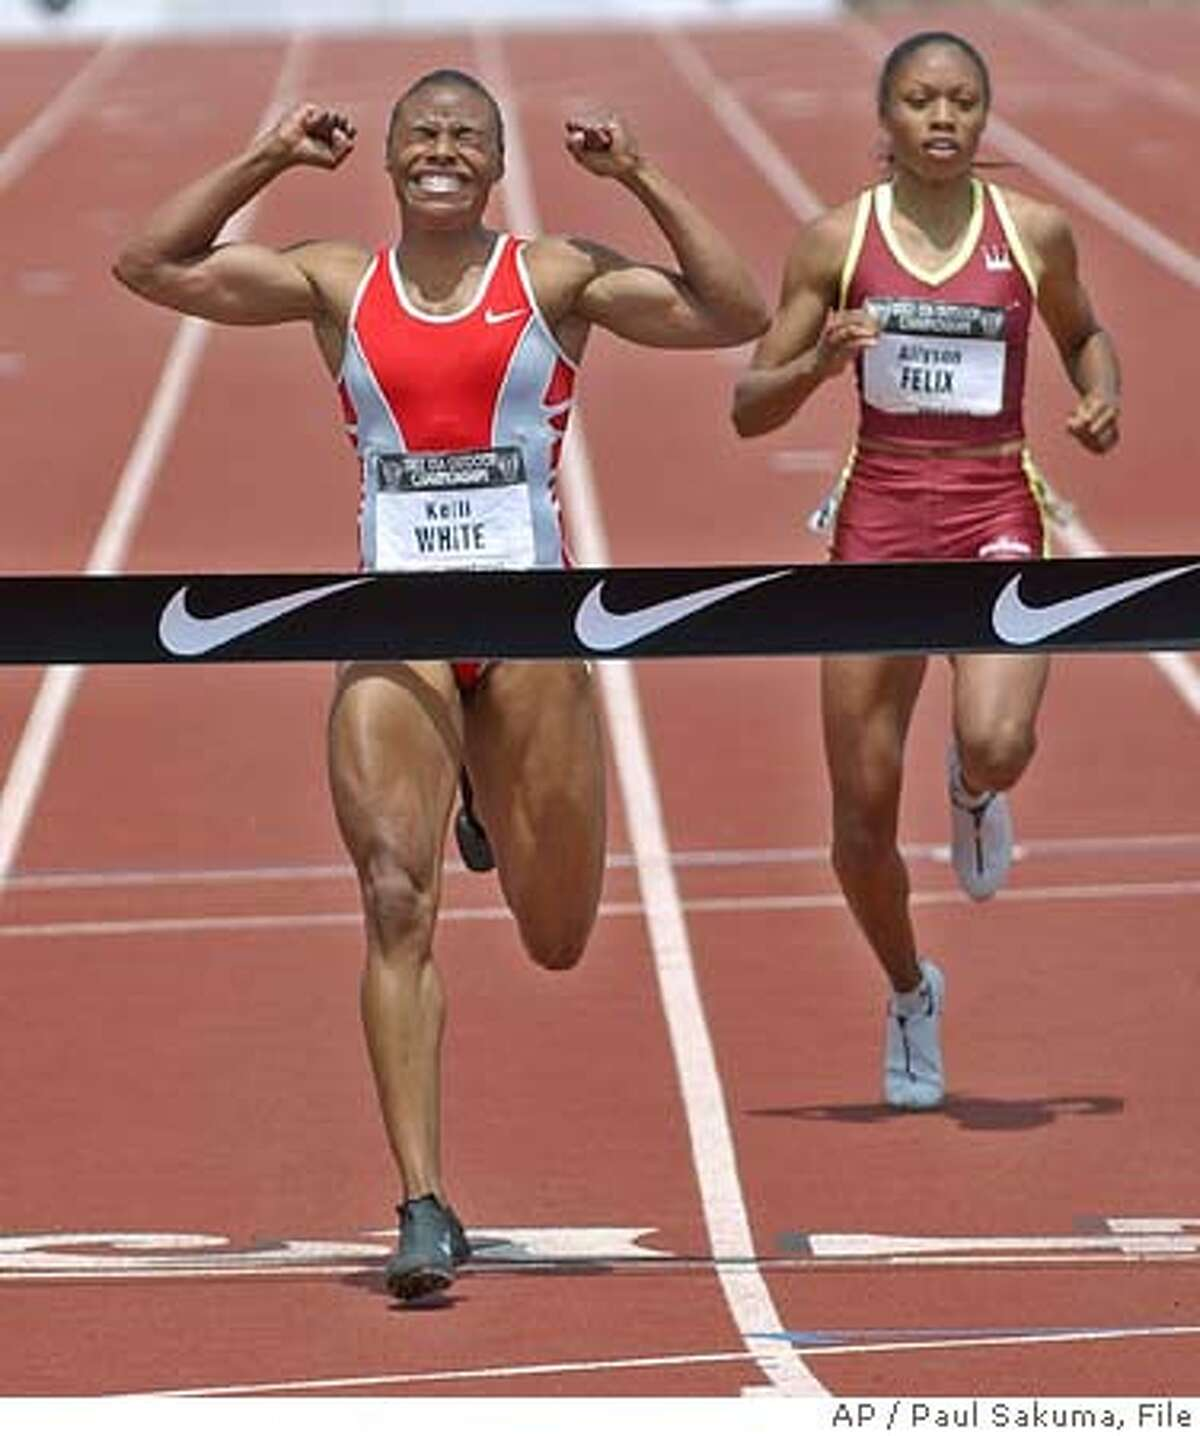 Kelli White, left, gestures after winning in the finals of the 200 meters in 22.21 seconds in the U.S. track and field championships, Sunday, June 22, 2003, in Stanford, Calif. At right is third-place finisher Allyson Felix, with a time of 22.59 seconds. By finishing third Felix, who graduated from high school Friday, made the U.S. team for the world championships. (AP Photo/Paul Sakuma) ALSO RAN 06/23/03, 05/20/04 Kelli White won the 200 at the U.S. championships at Stanford last June, but it doesnt count. Kelli White won the 200 at the U.S. championships at Stanford last June, but it doesnt count. ProductNameChronicle cat Metro#MainNews#Chronicle#12/3/2004#ALL#5star##0421263779